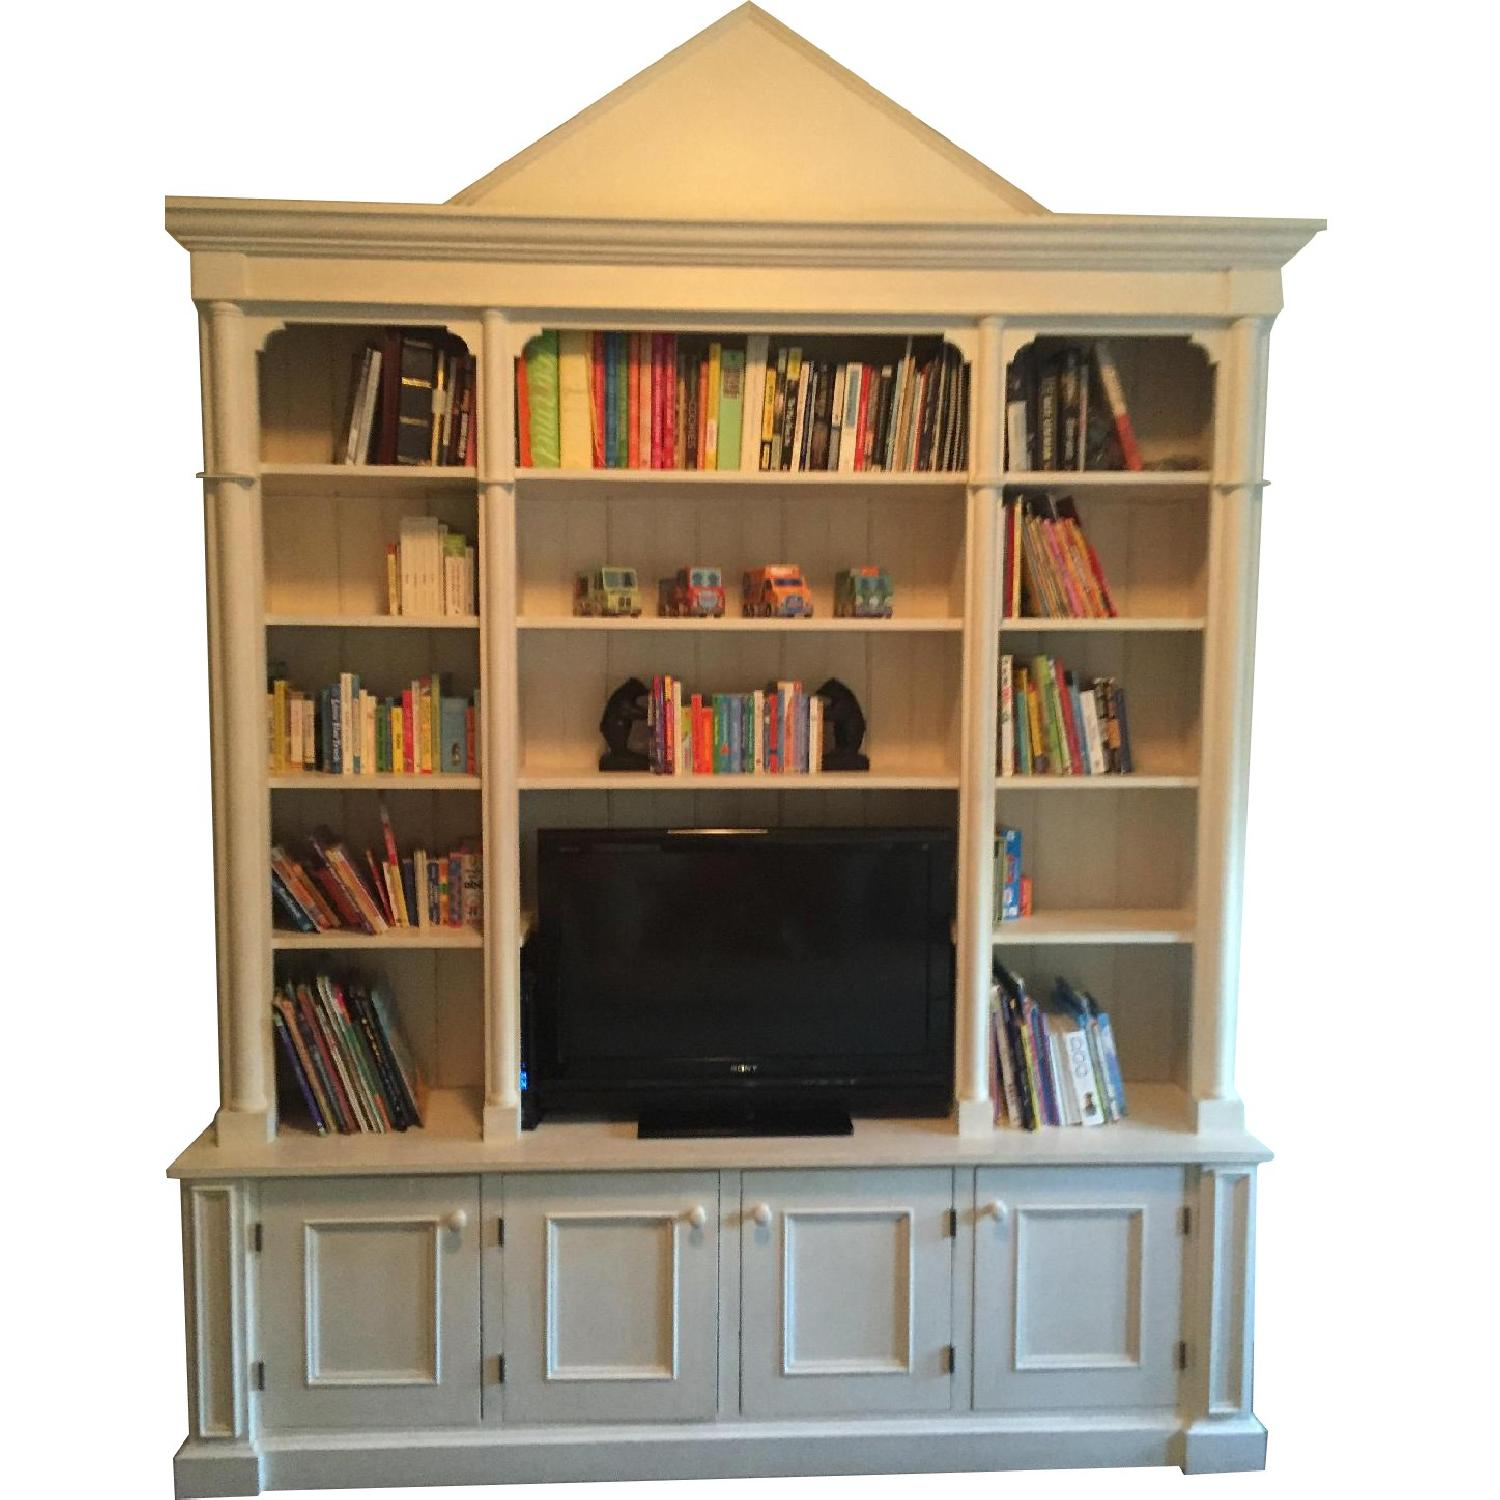 ABC Carpet & Home Toad Hill Collection Bookcase w/ TV Shelf